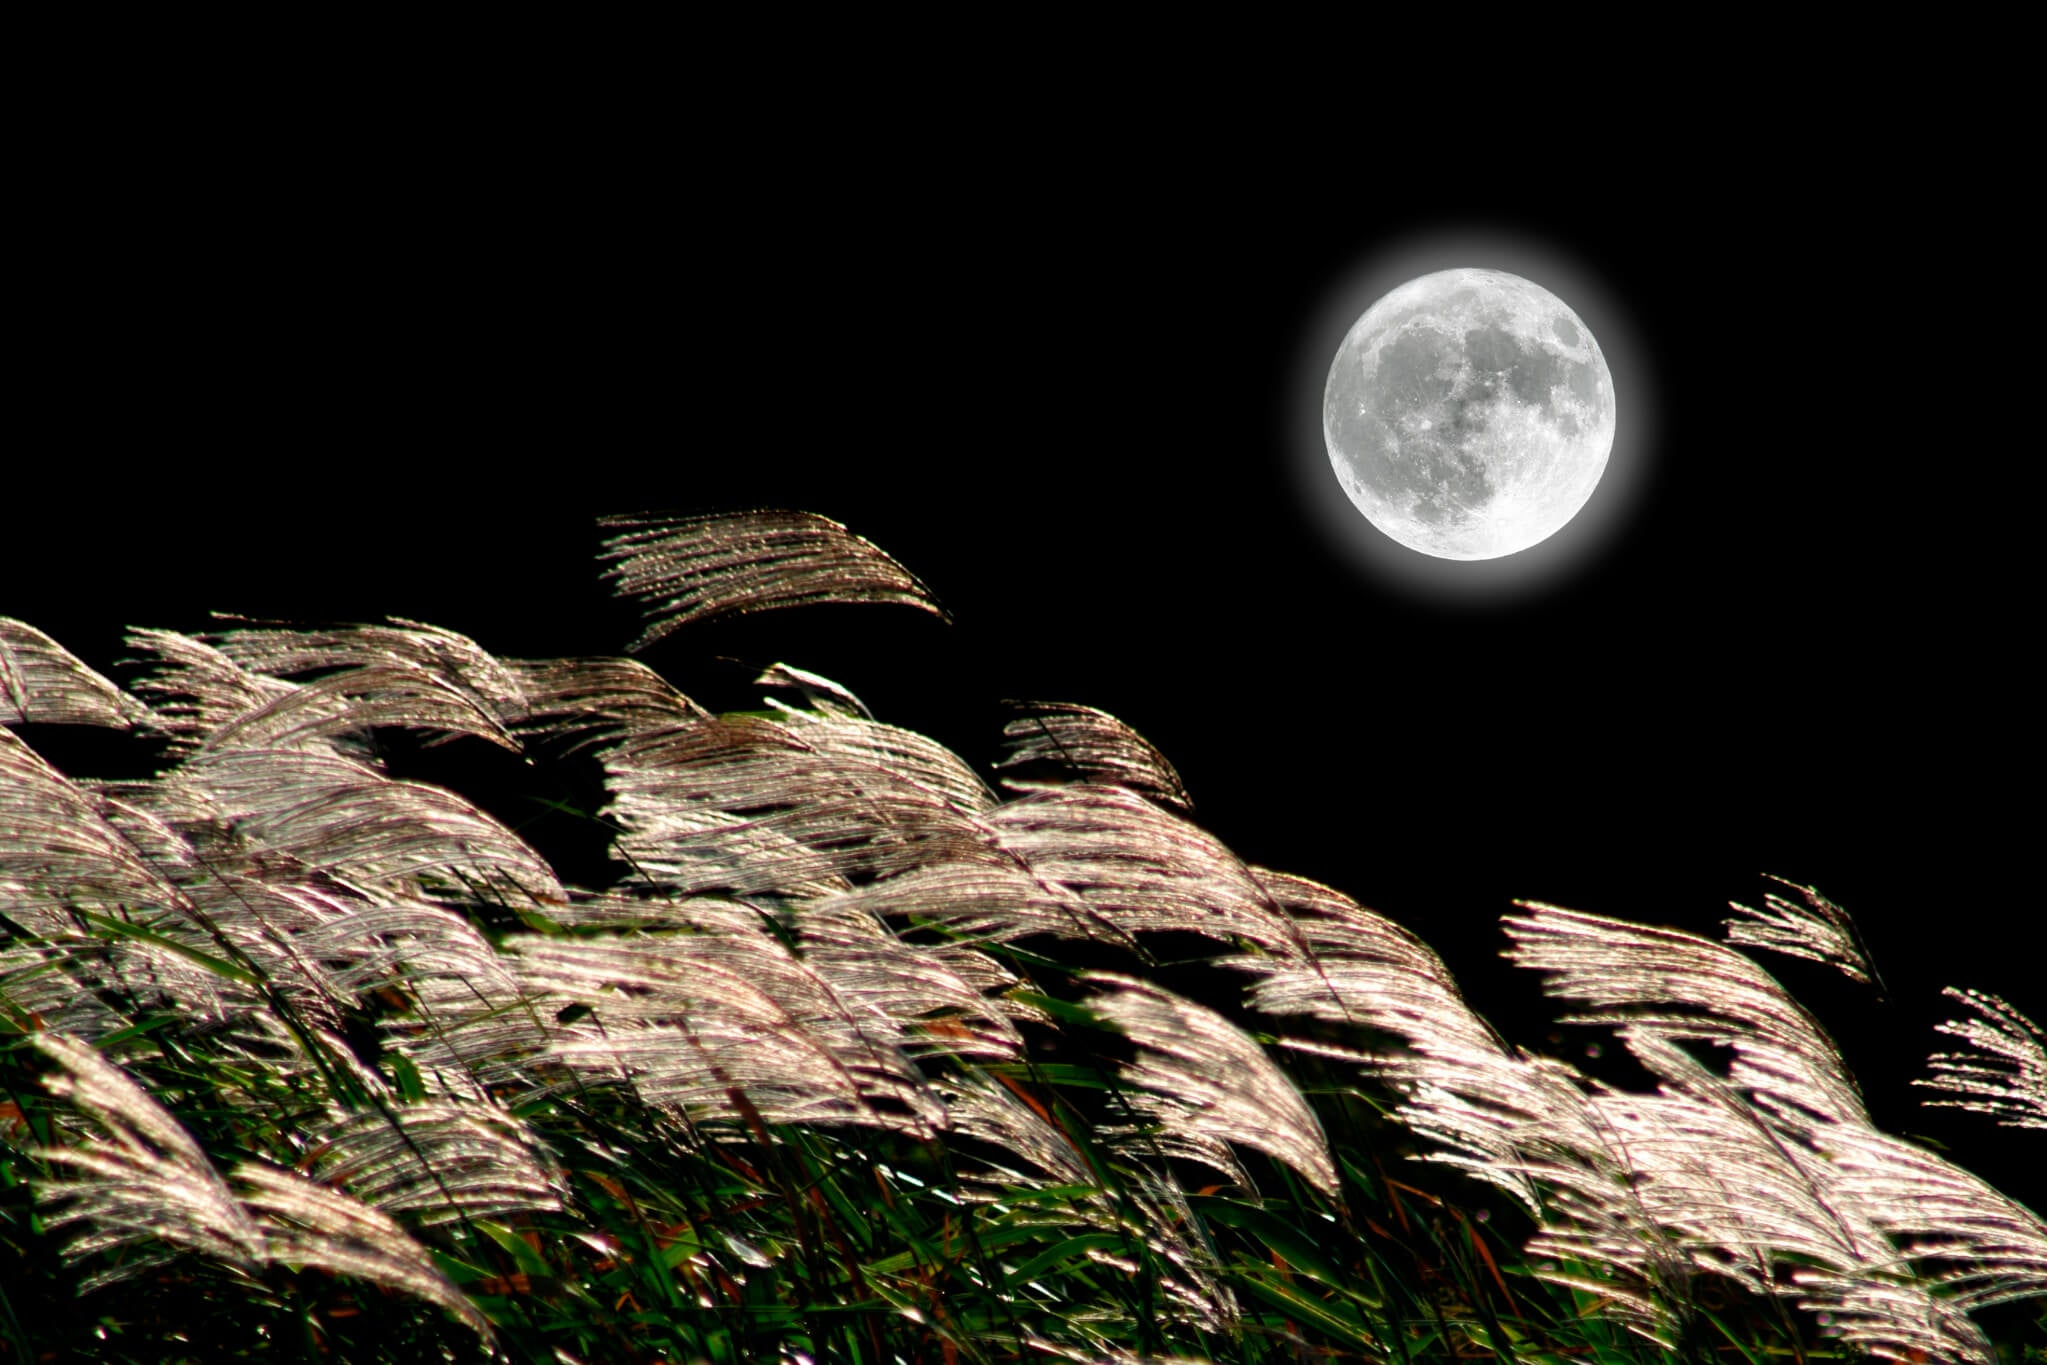 Moon shining over the pampas grass